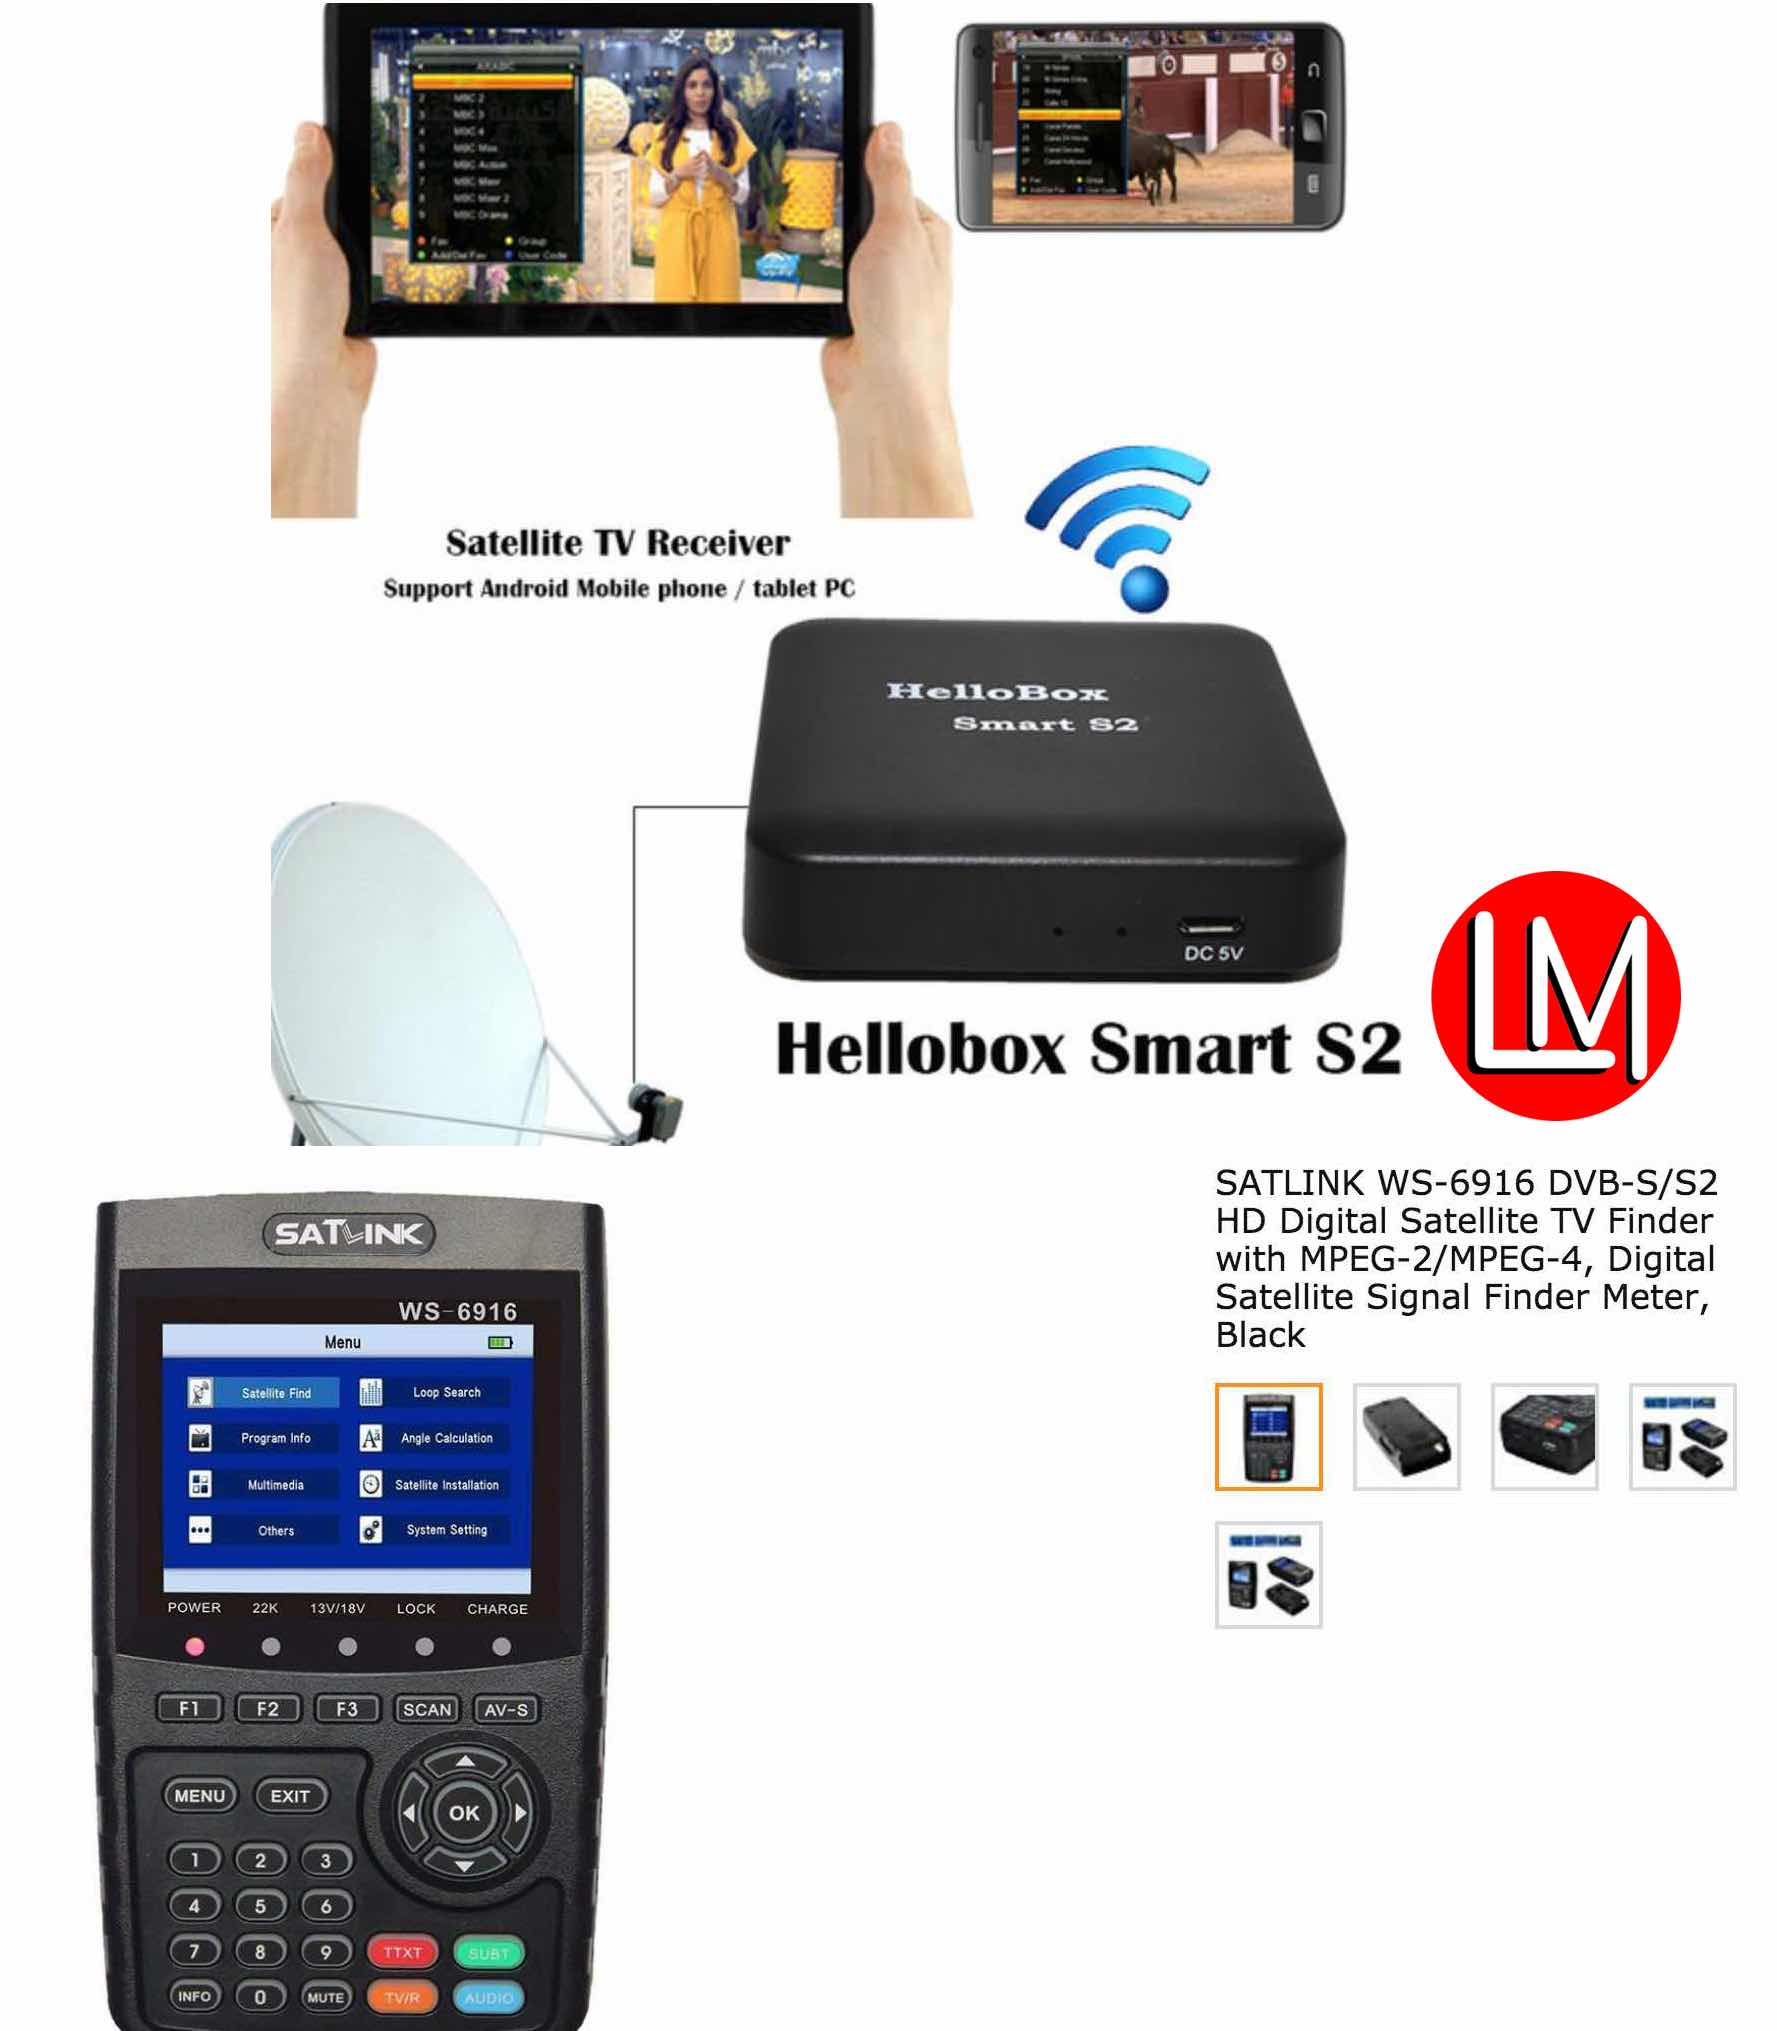 Why you Need a Digital SatFinder/Tracker/Meter to Track Your Satellite TV Channels